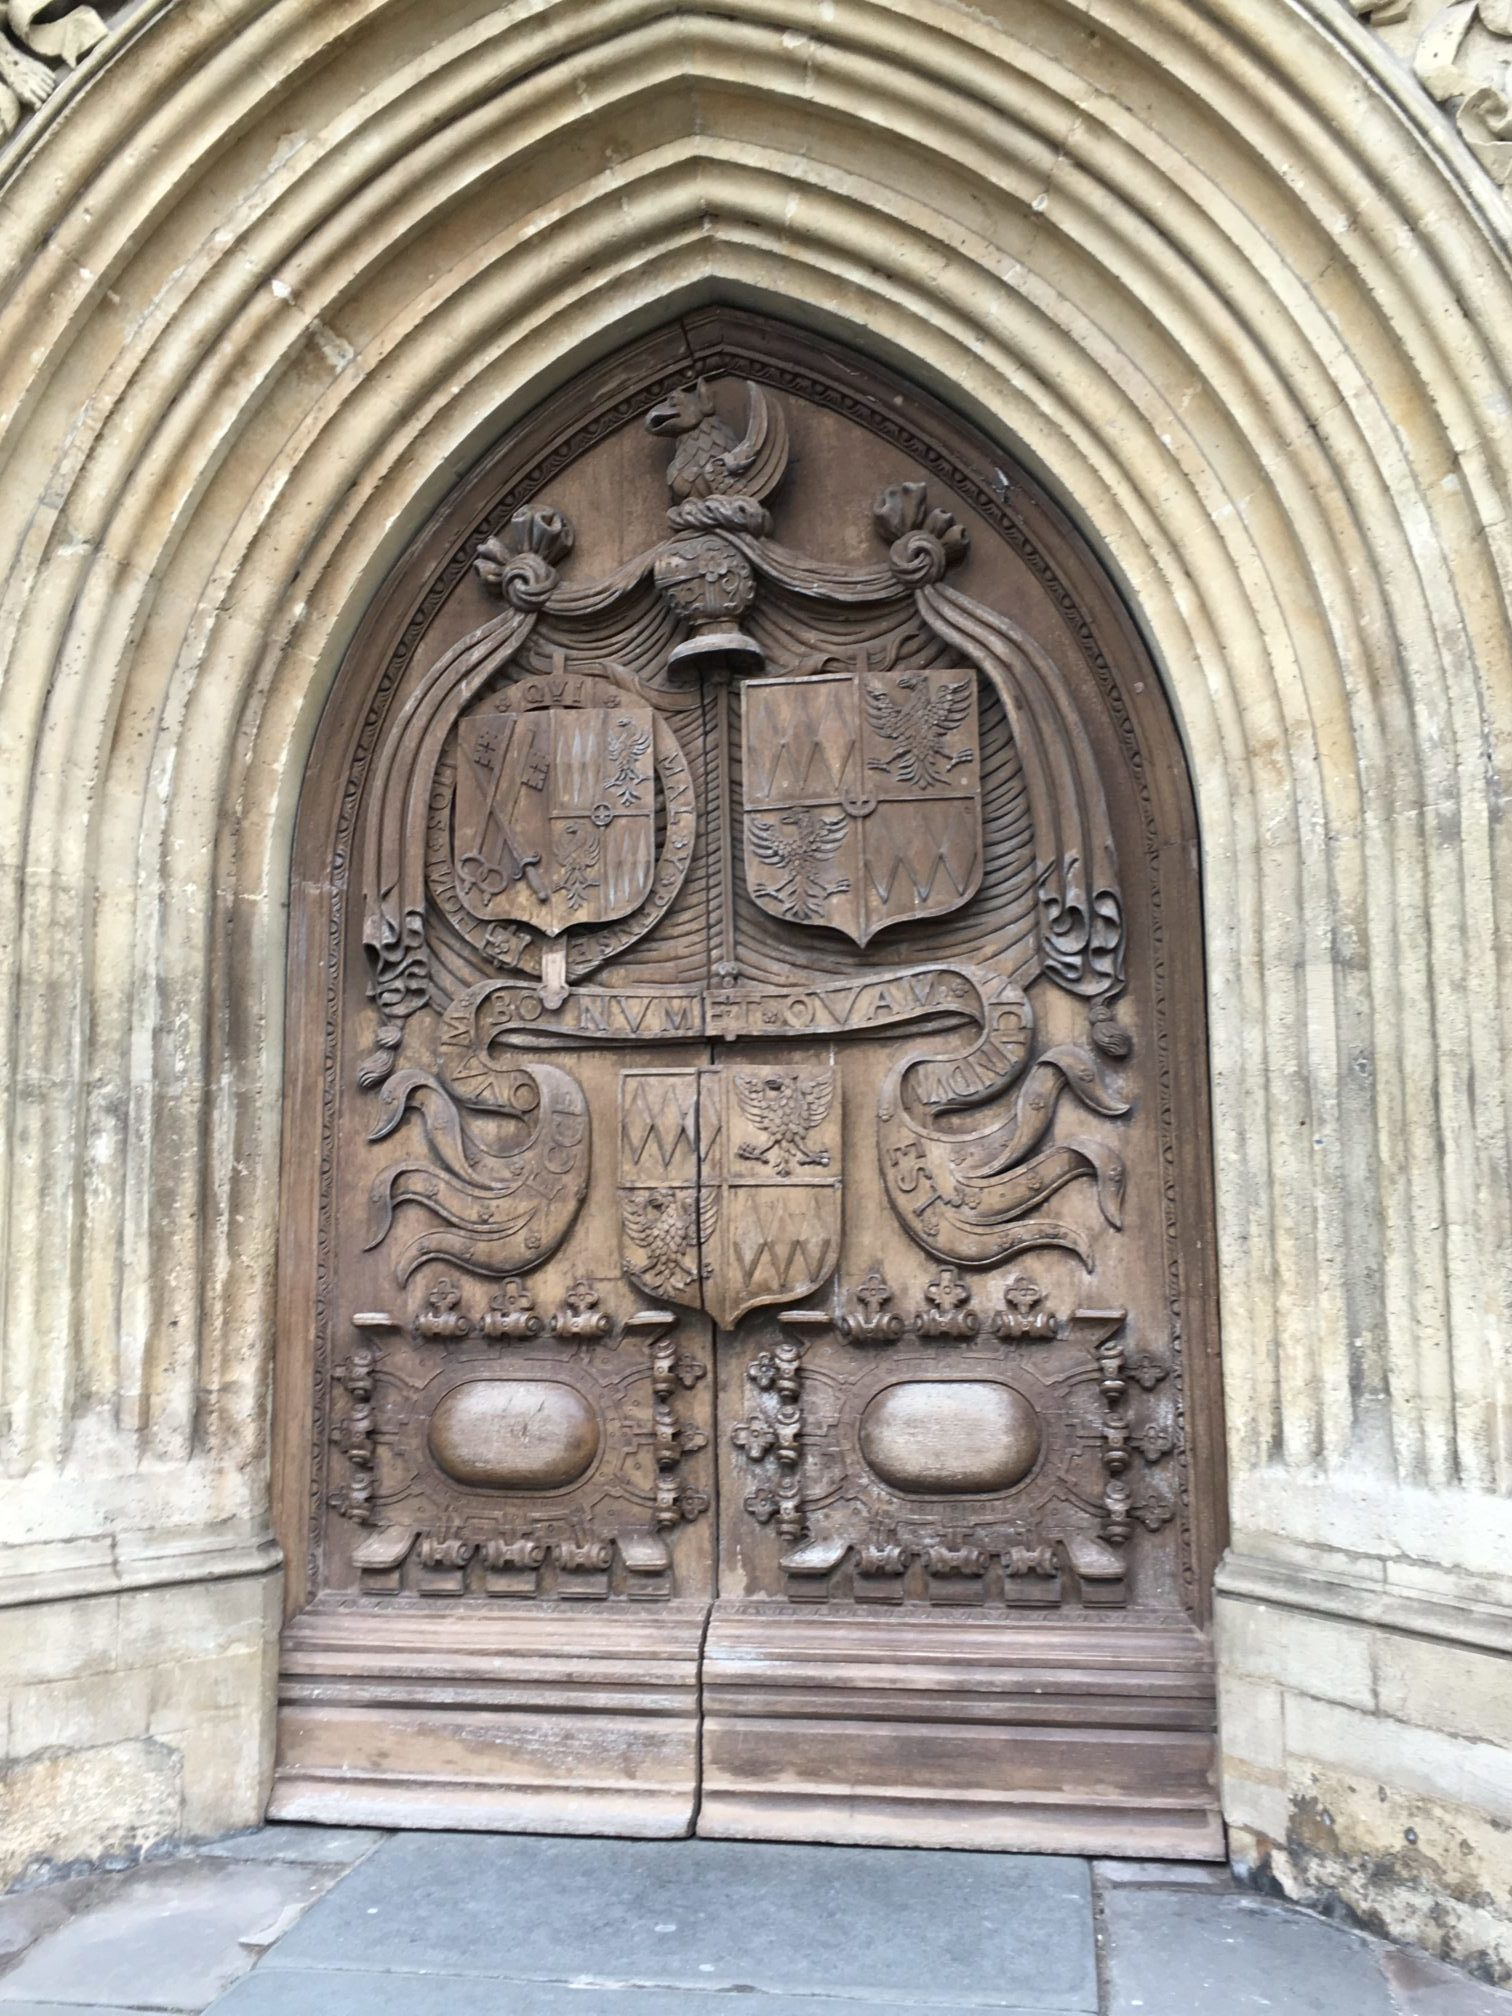 Doors to the house of the dead, Bath, England